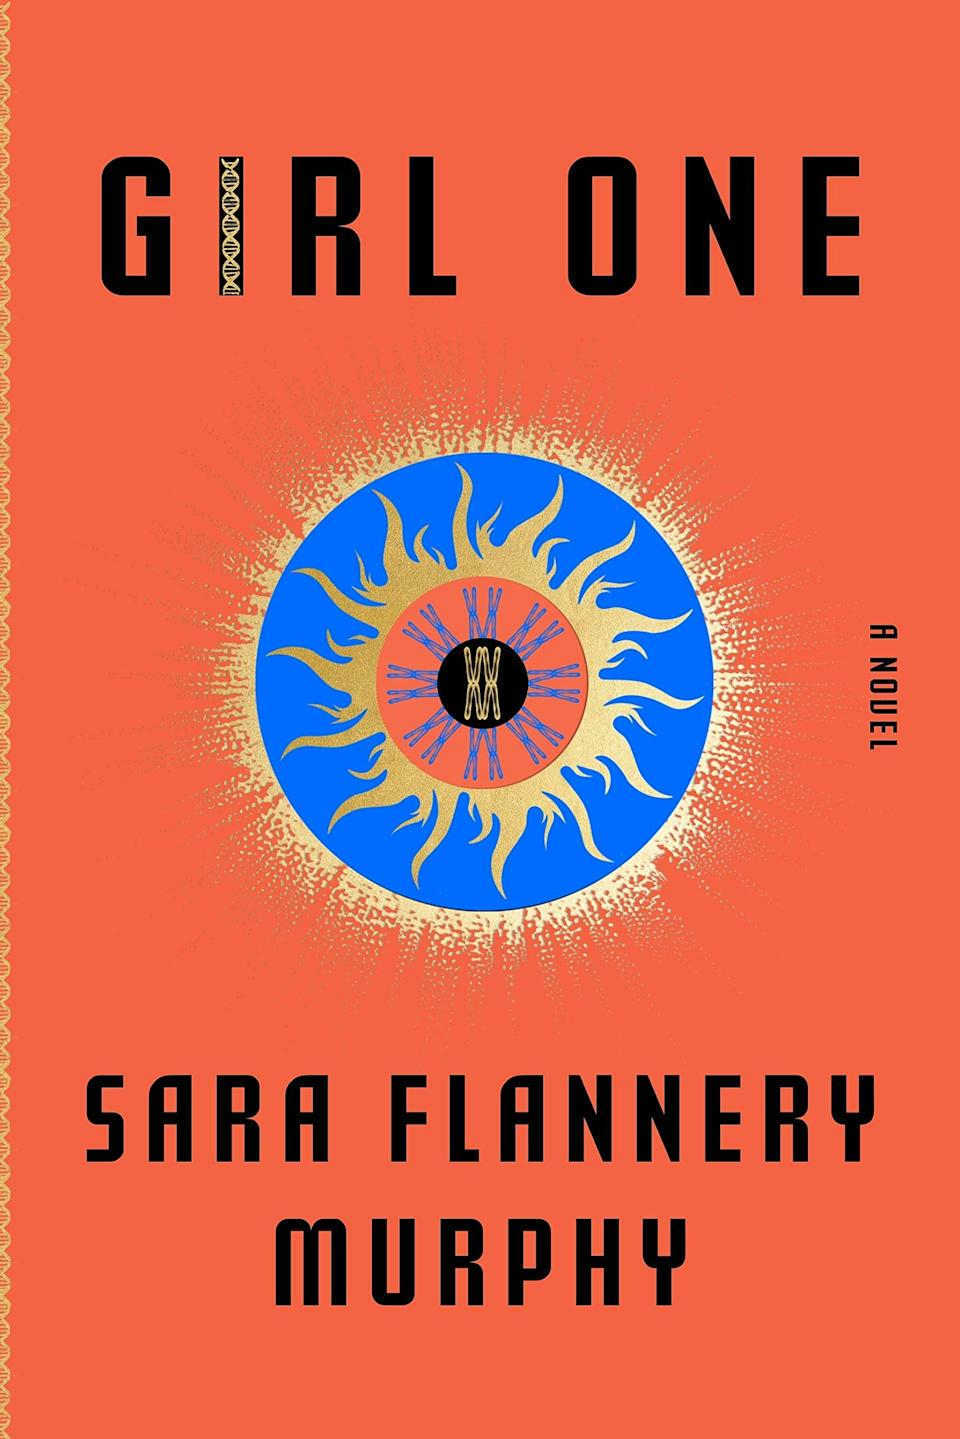 <p><span><strong>Girl One</strong></span> by Sara Flannery Murphy is a supernatural thriller about nine women who hold the distinction of being the first babies conceived without male DNA. At first, the girls and their mothers lived together on a commune, but when a fire destroyed their home they were all separated. Now, Josephine Morrow, the firstborn of the group, is on a mission to reunite her family after one of the girls goes missing. </p> <p><em>Out June 1</em></p>